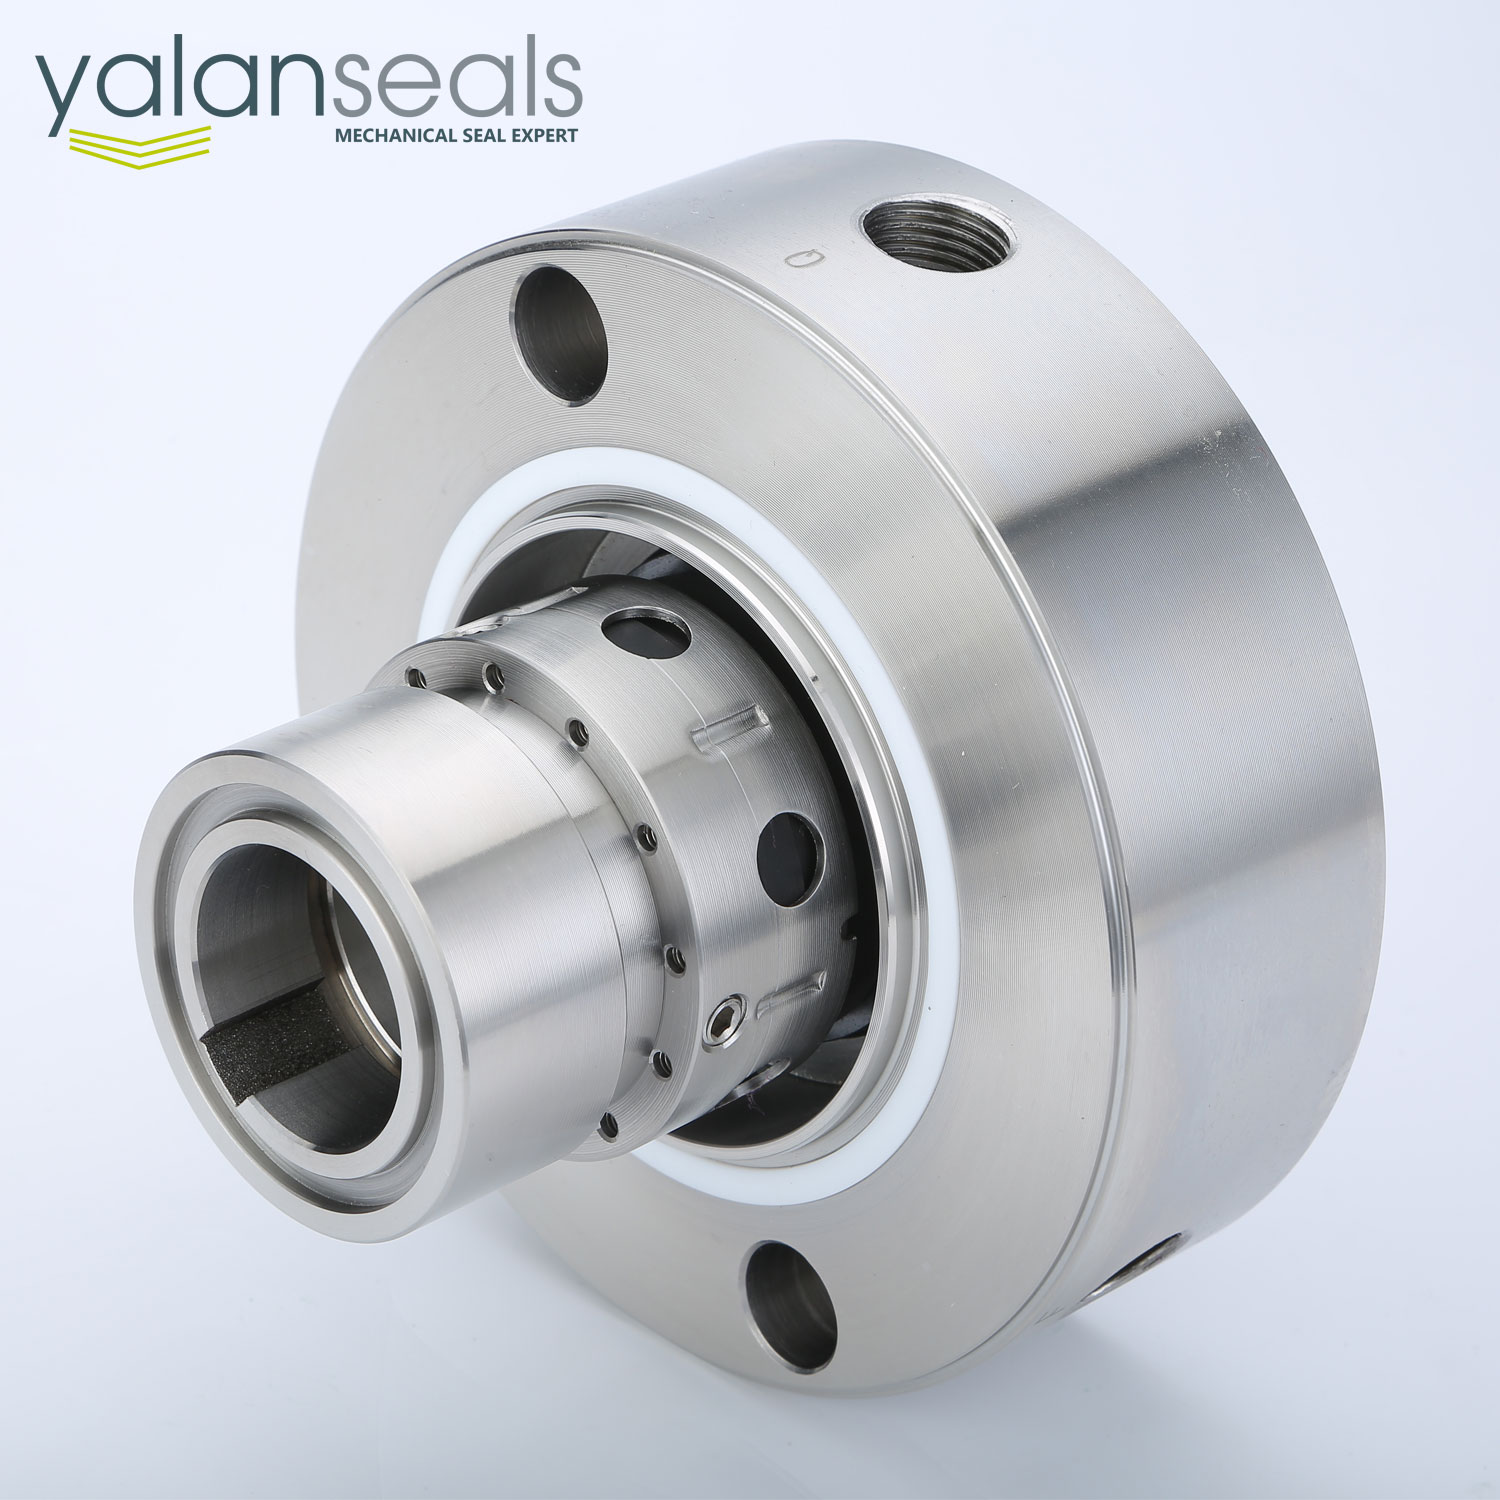 HC80-315 Mechanical Seals for Power Plants, Alumina Plants, Flue Gas Desulphurization, Deashing System and Slurry Pumps